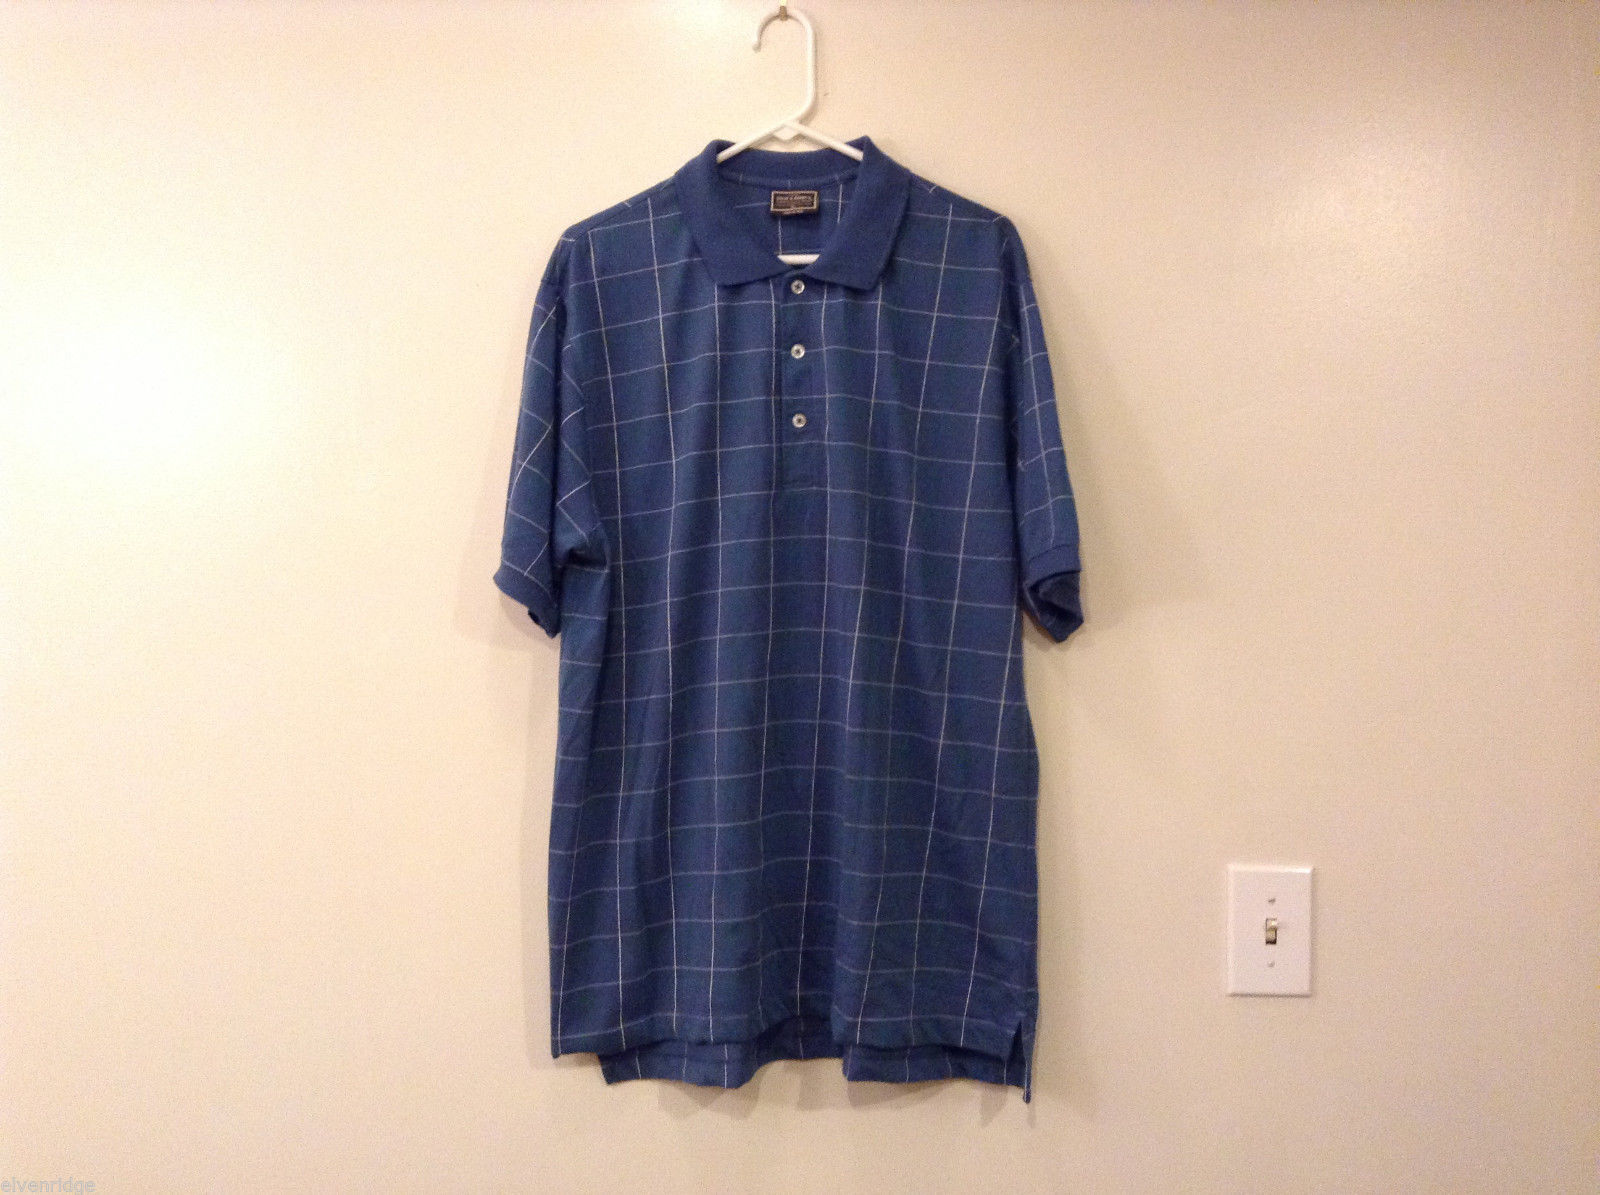 Steve & Barry's Men's Size XL Polo Shirt Casual Blue Plaid w/ 3-Button Placket